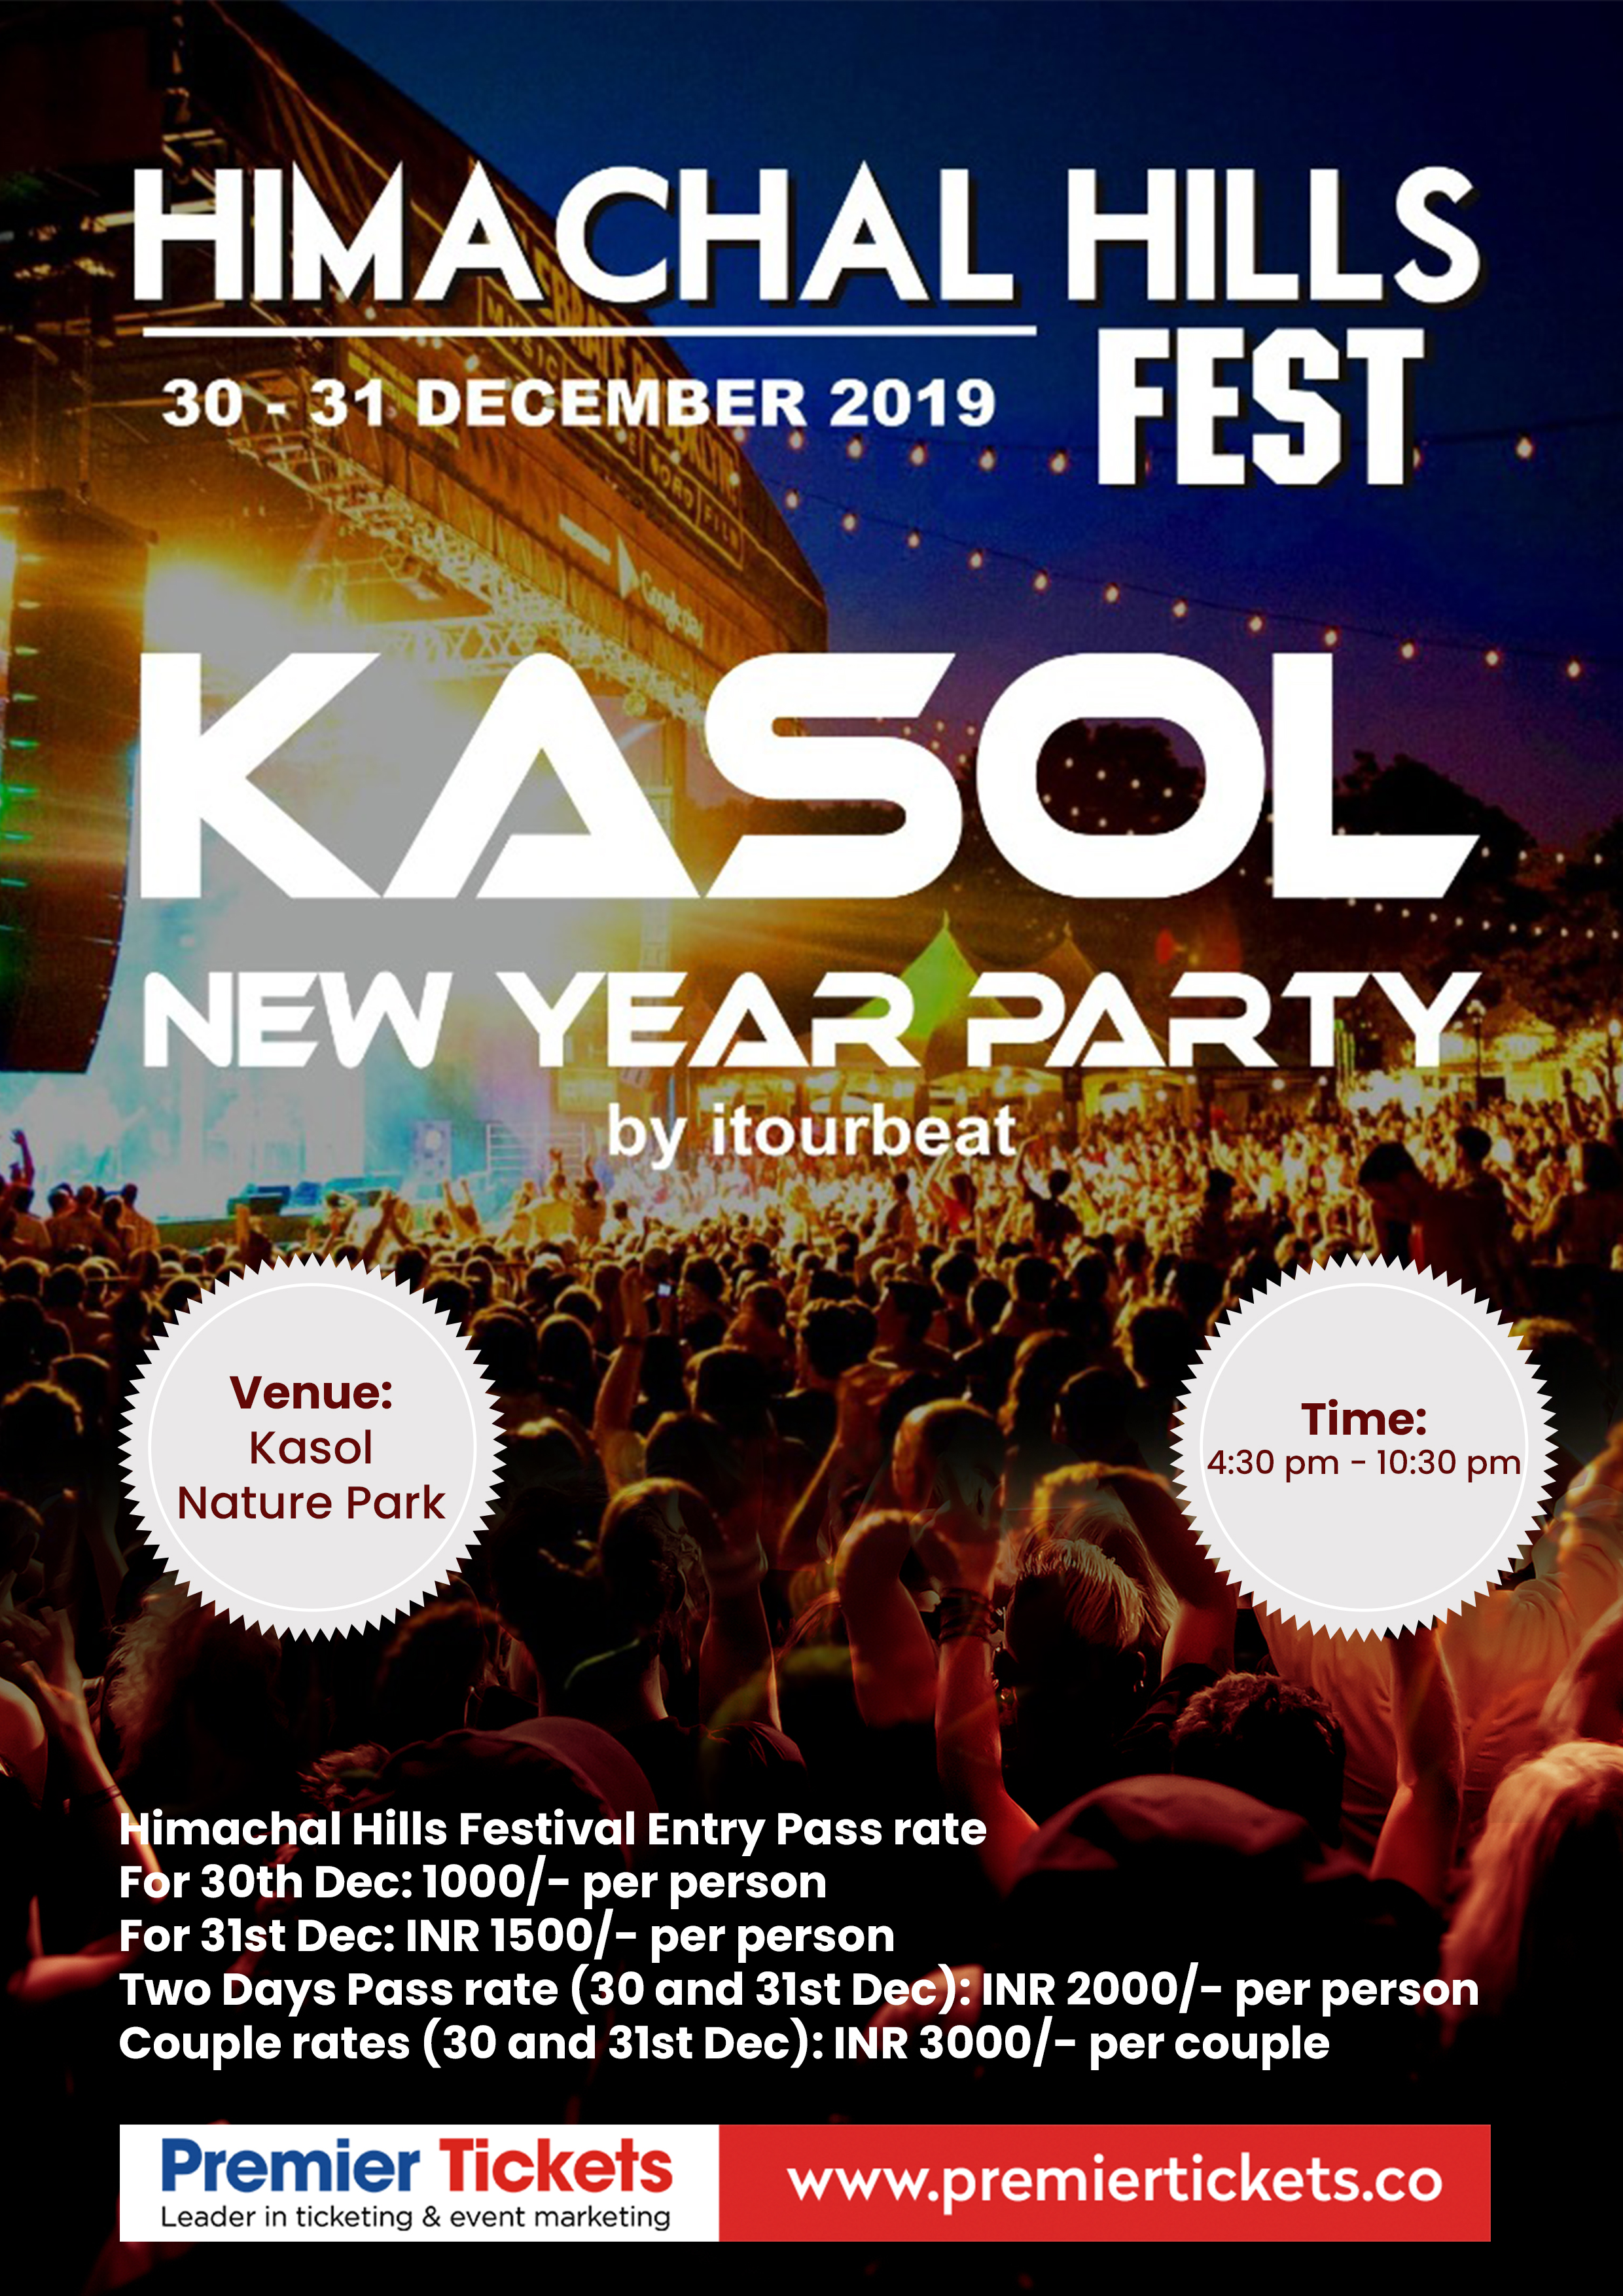 Himachal Hills Festival (Kasol New Year Party)